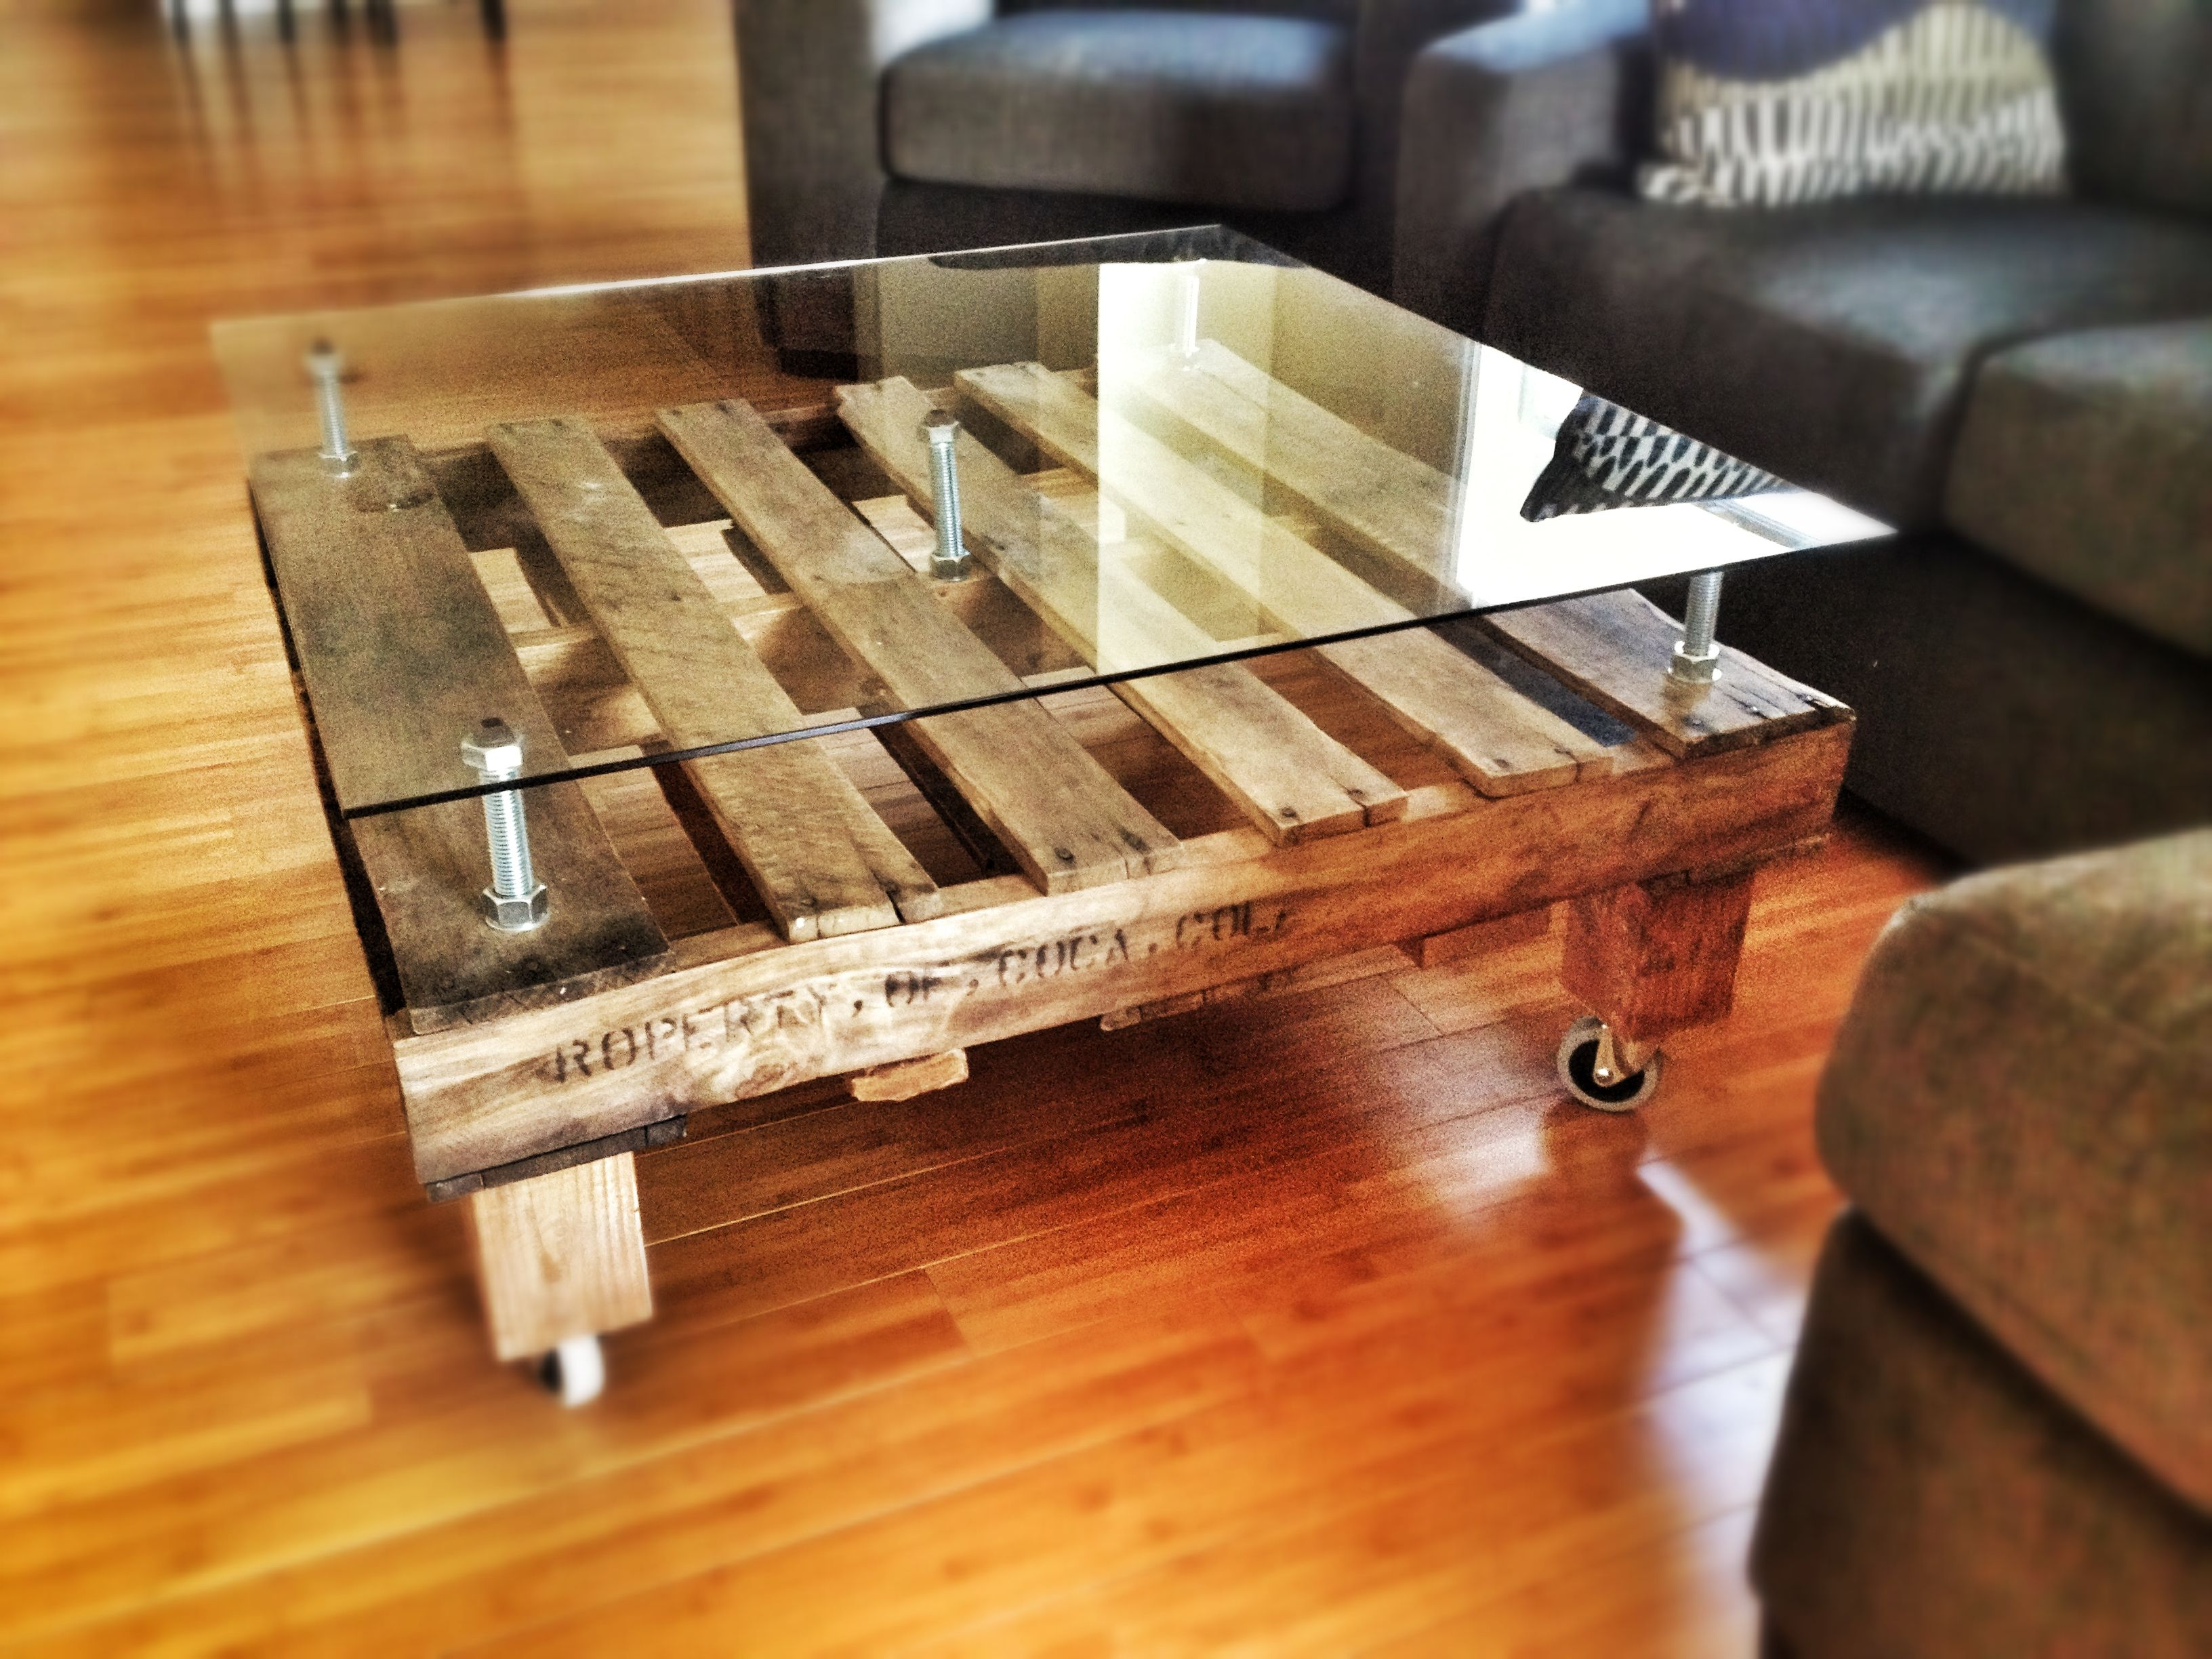 Diy pallet coffee table i made using oversized bolts and a custom diy pallet coffee table i made using oversized bolts and a custom sheet of glass on geotapseo Choice Image